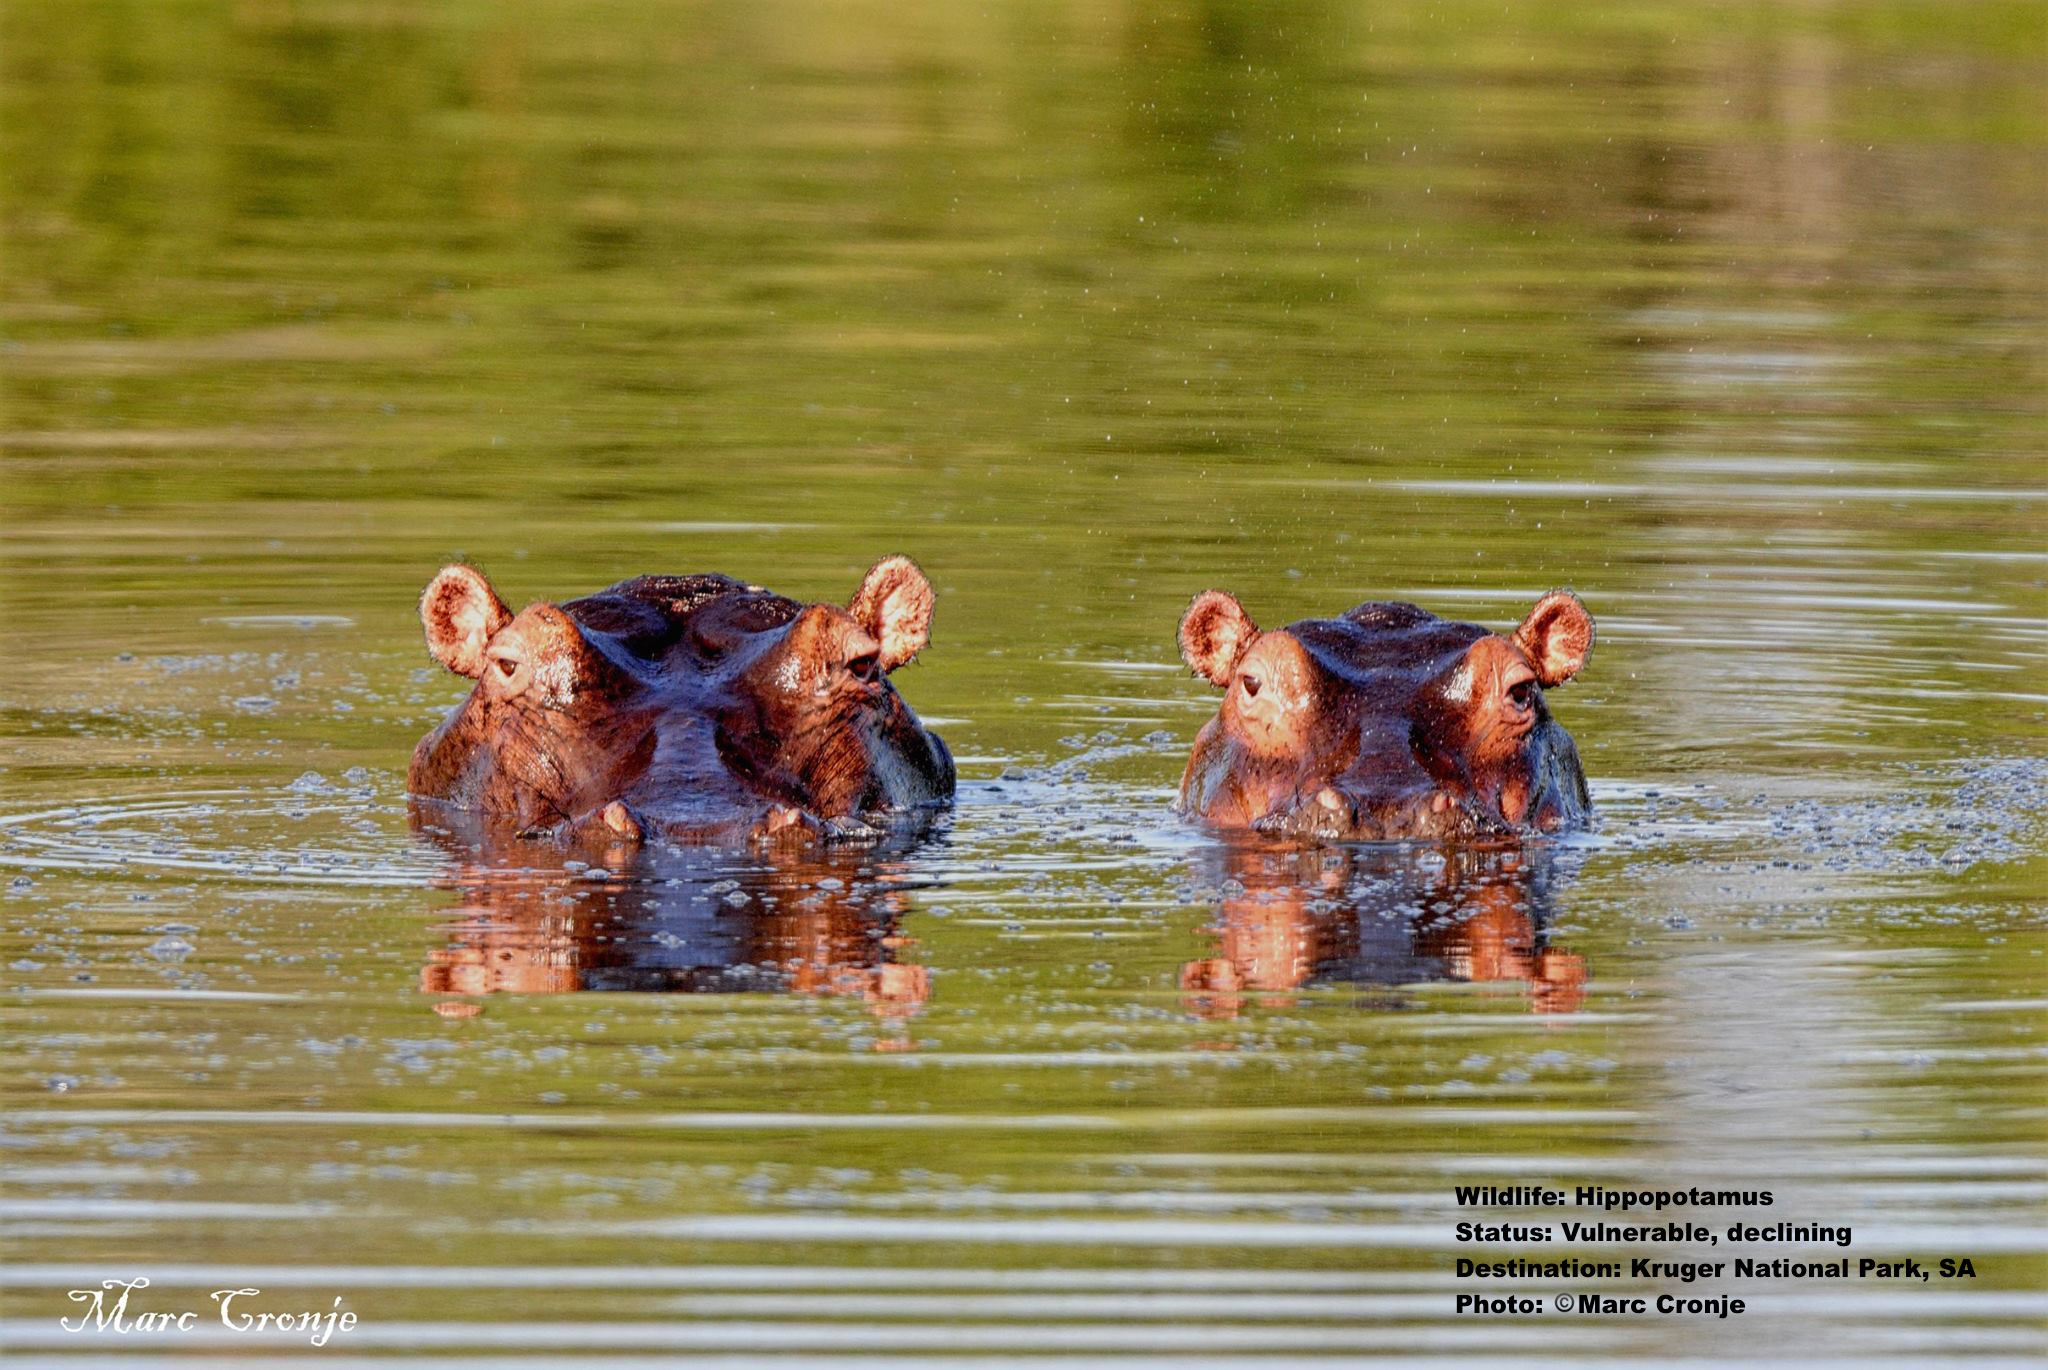 Hippos watch marc and his guests watch them at Kruger National Park, South Africa. Image: Marc Cronje. Independent Field Guide.